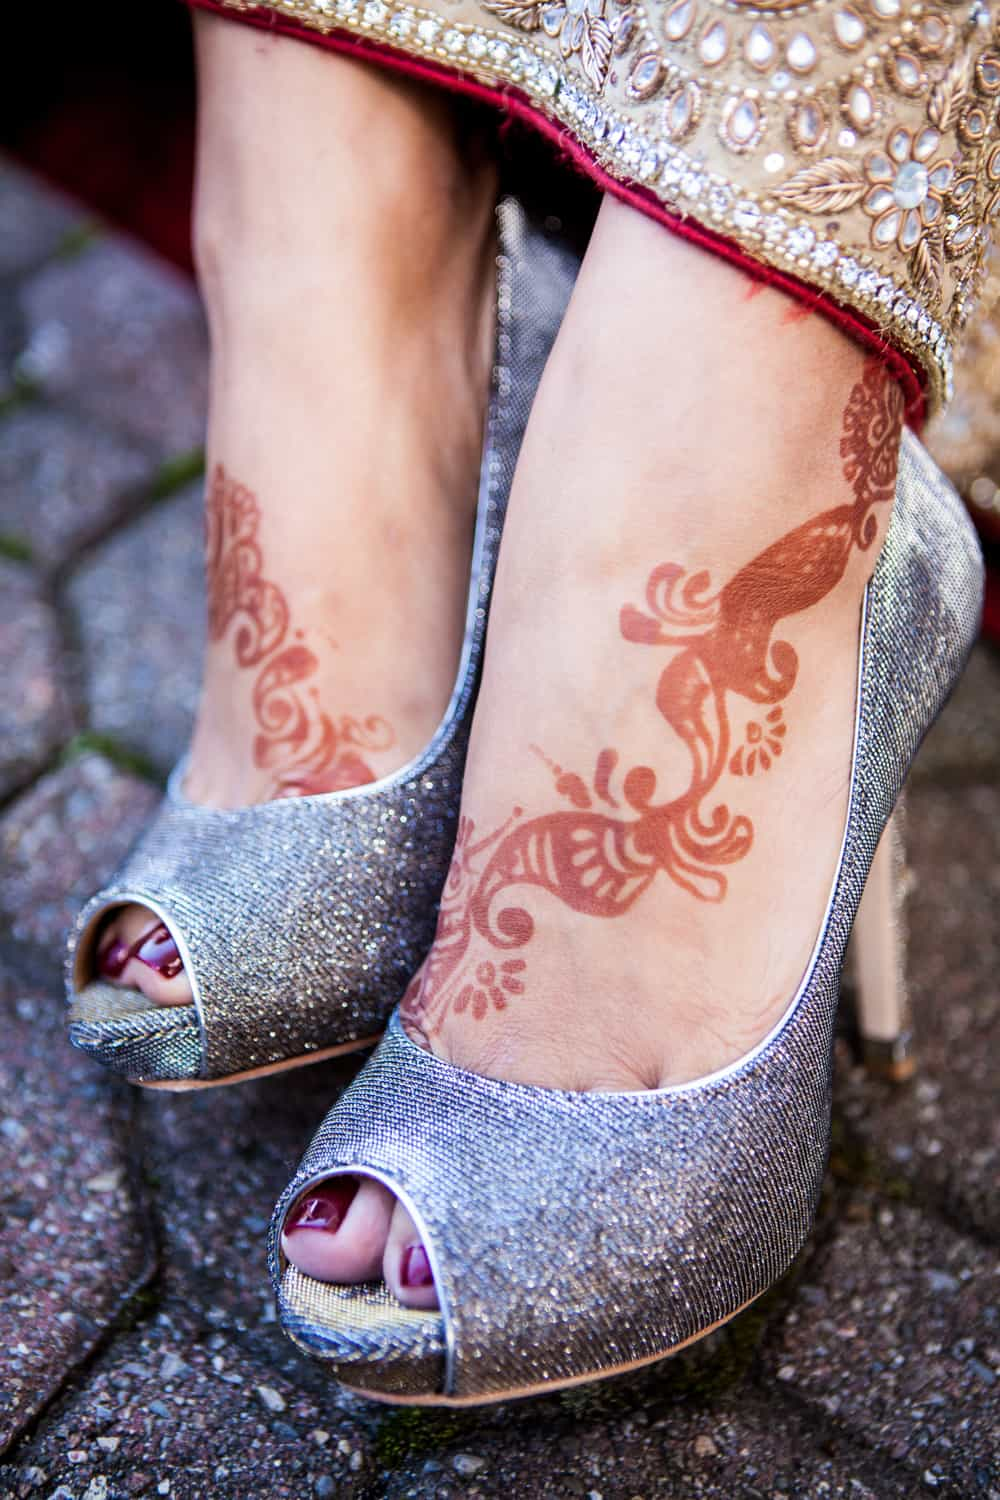 Close up on bride's feet wearing silver high heels and Indian henna design on skin